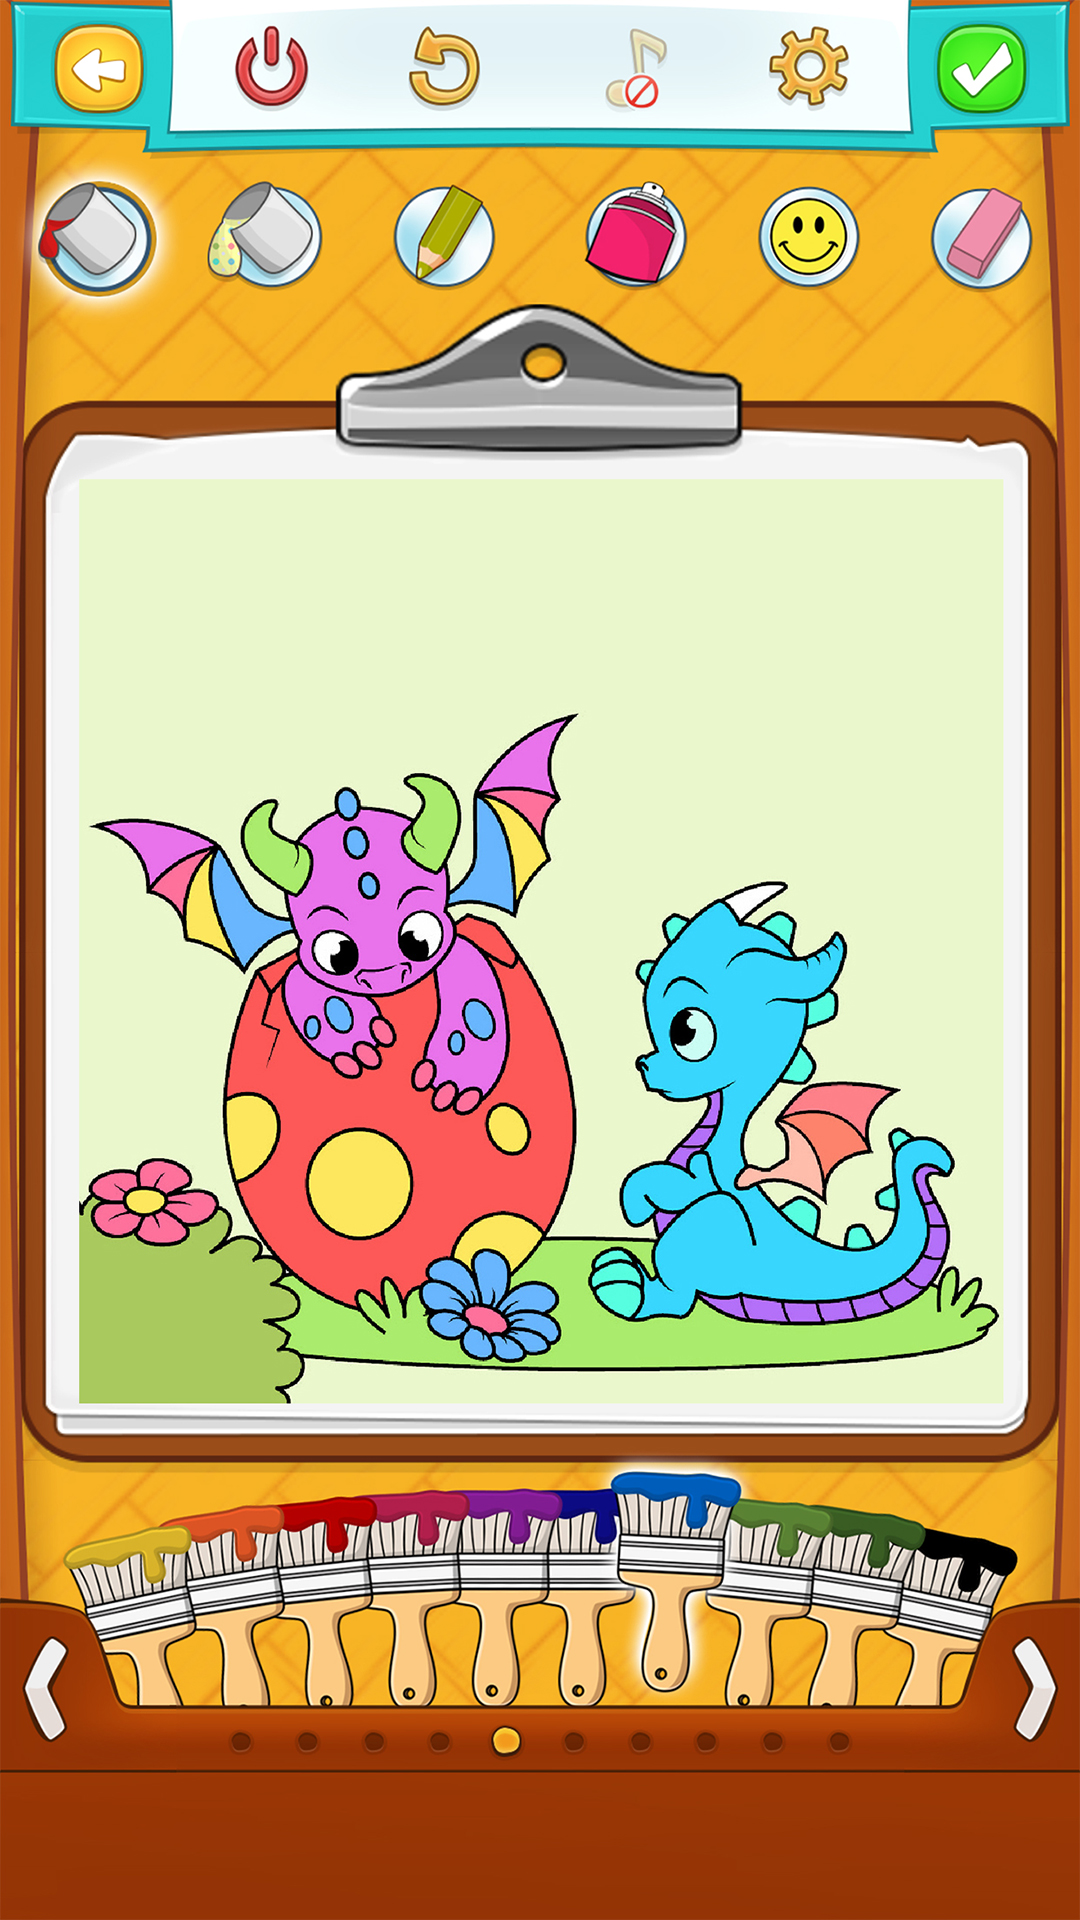 - Amazon.com: Coloring Games For Kids: Appstore For Android